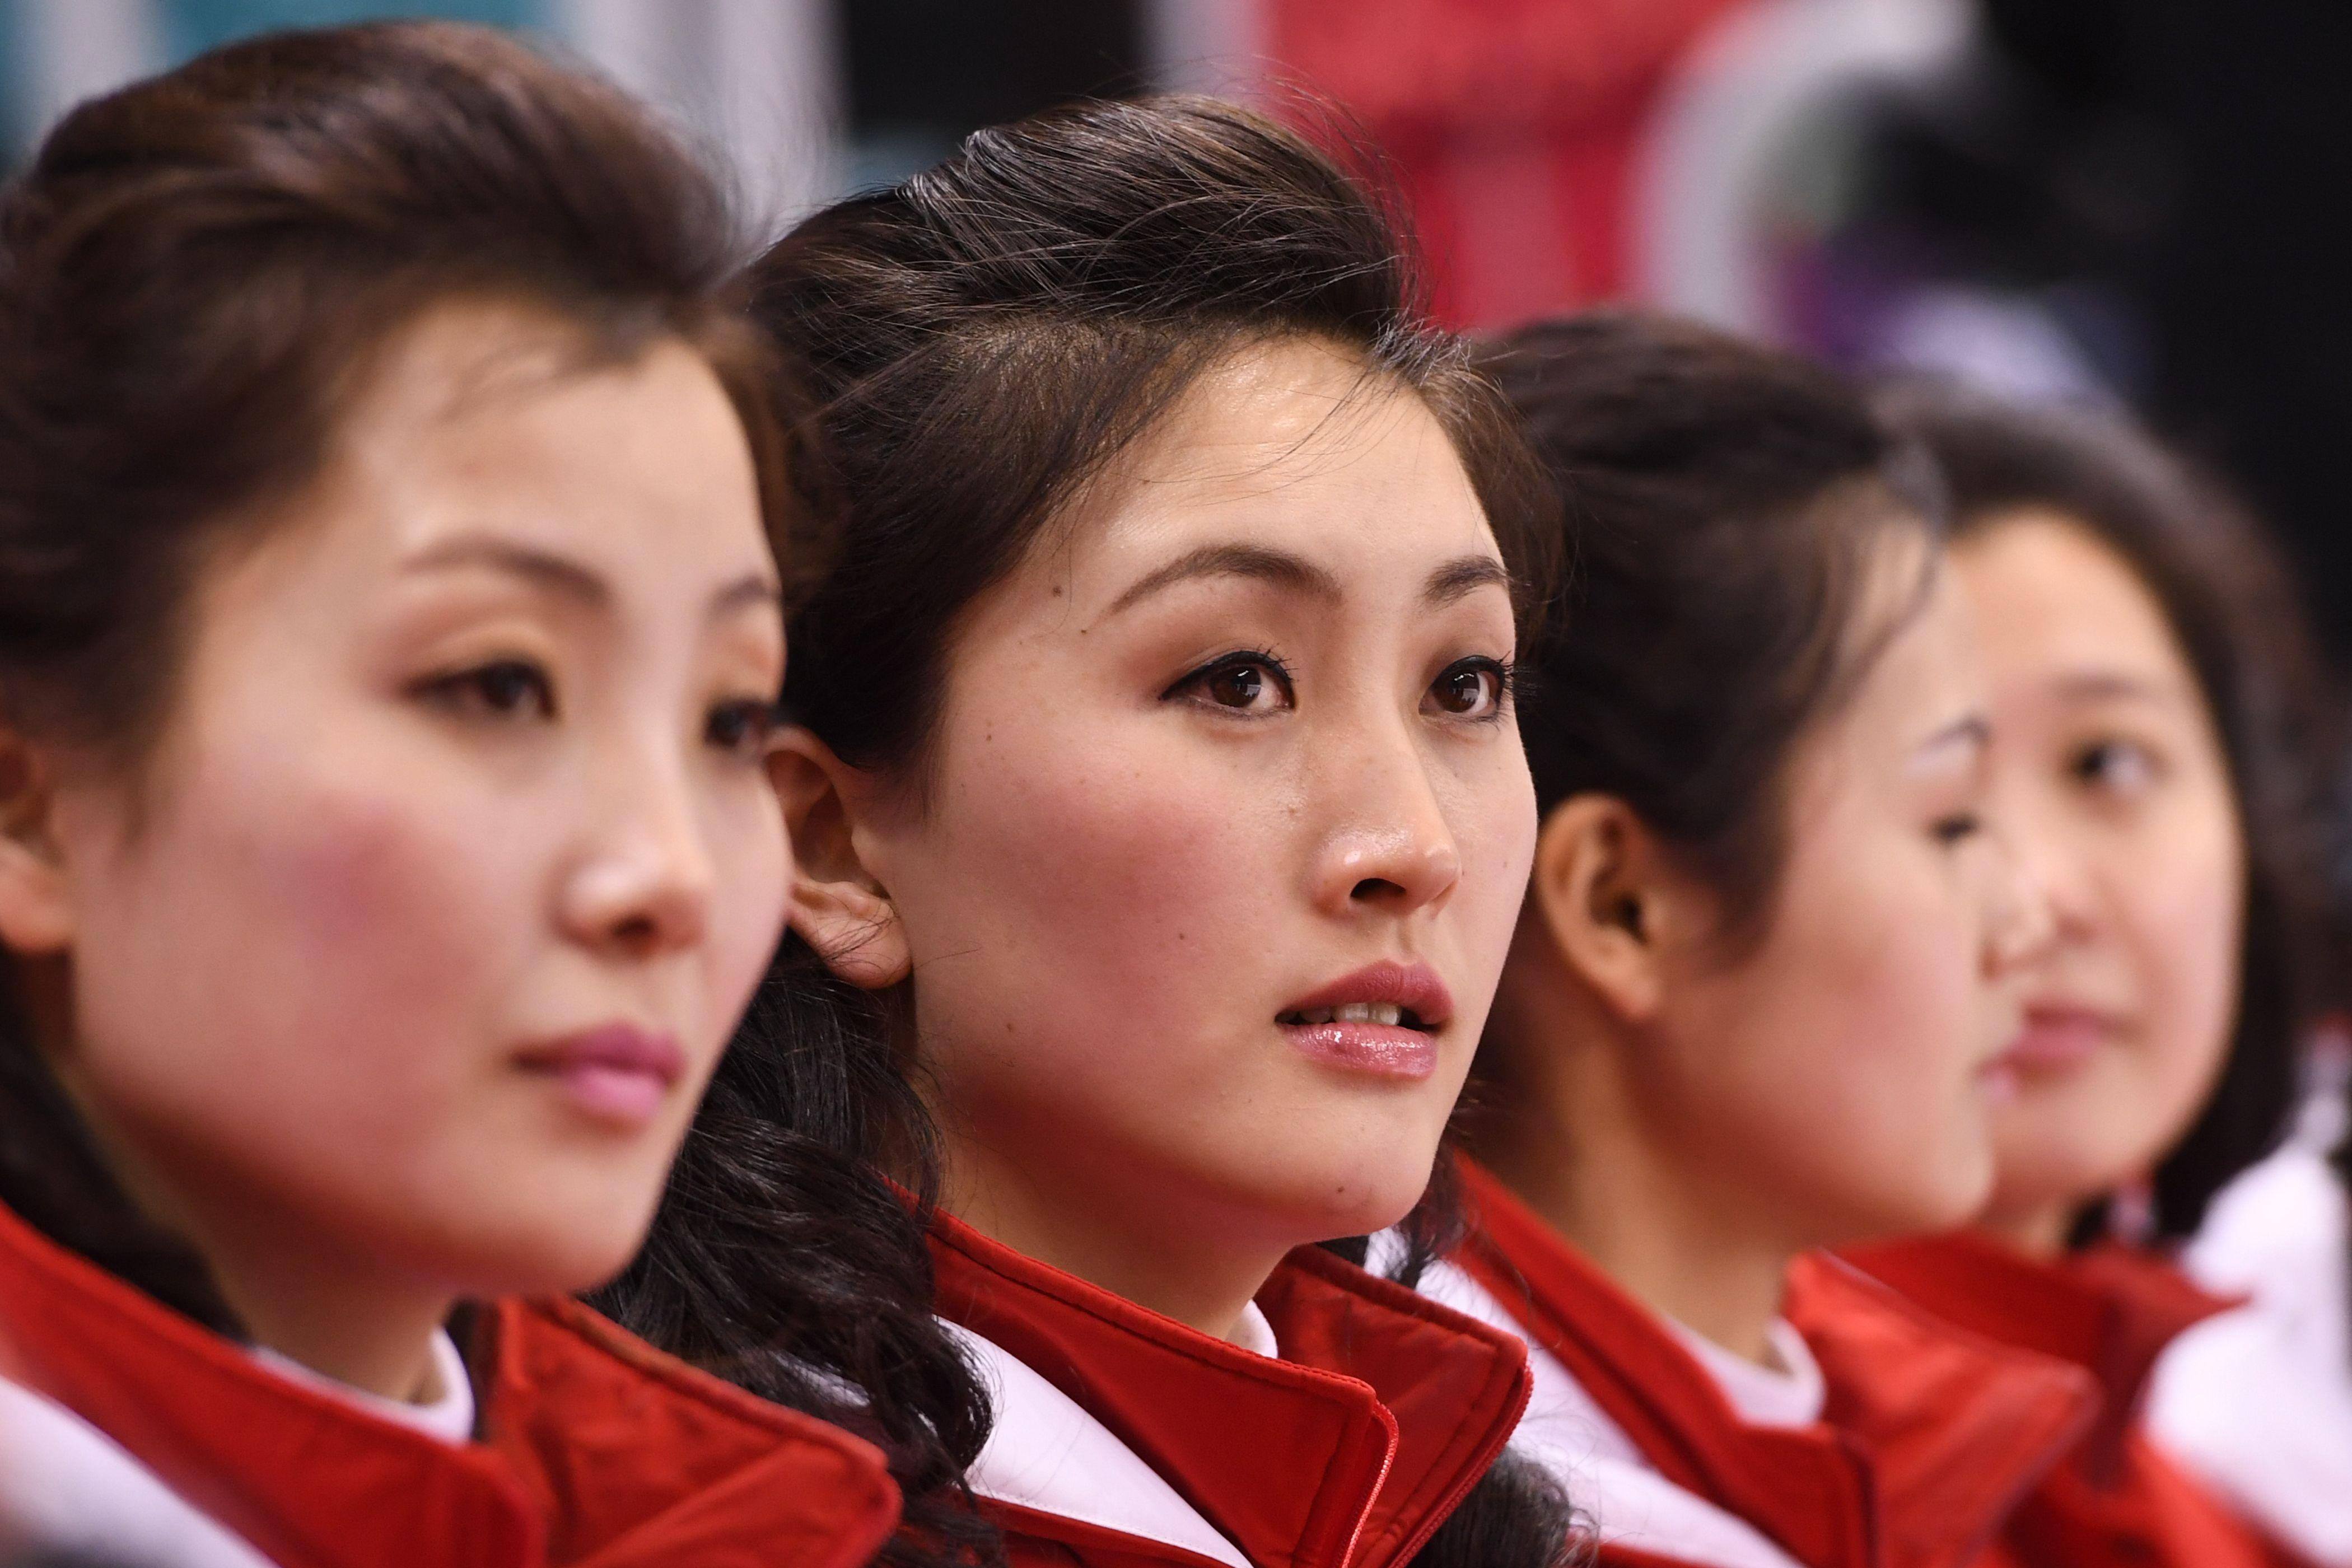 The North Korean cheerleaders caused quite a stir at the Kwandong Hockey Centre